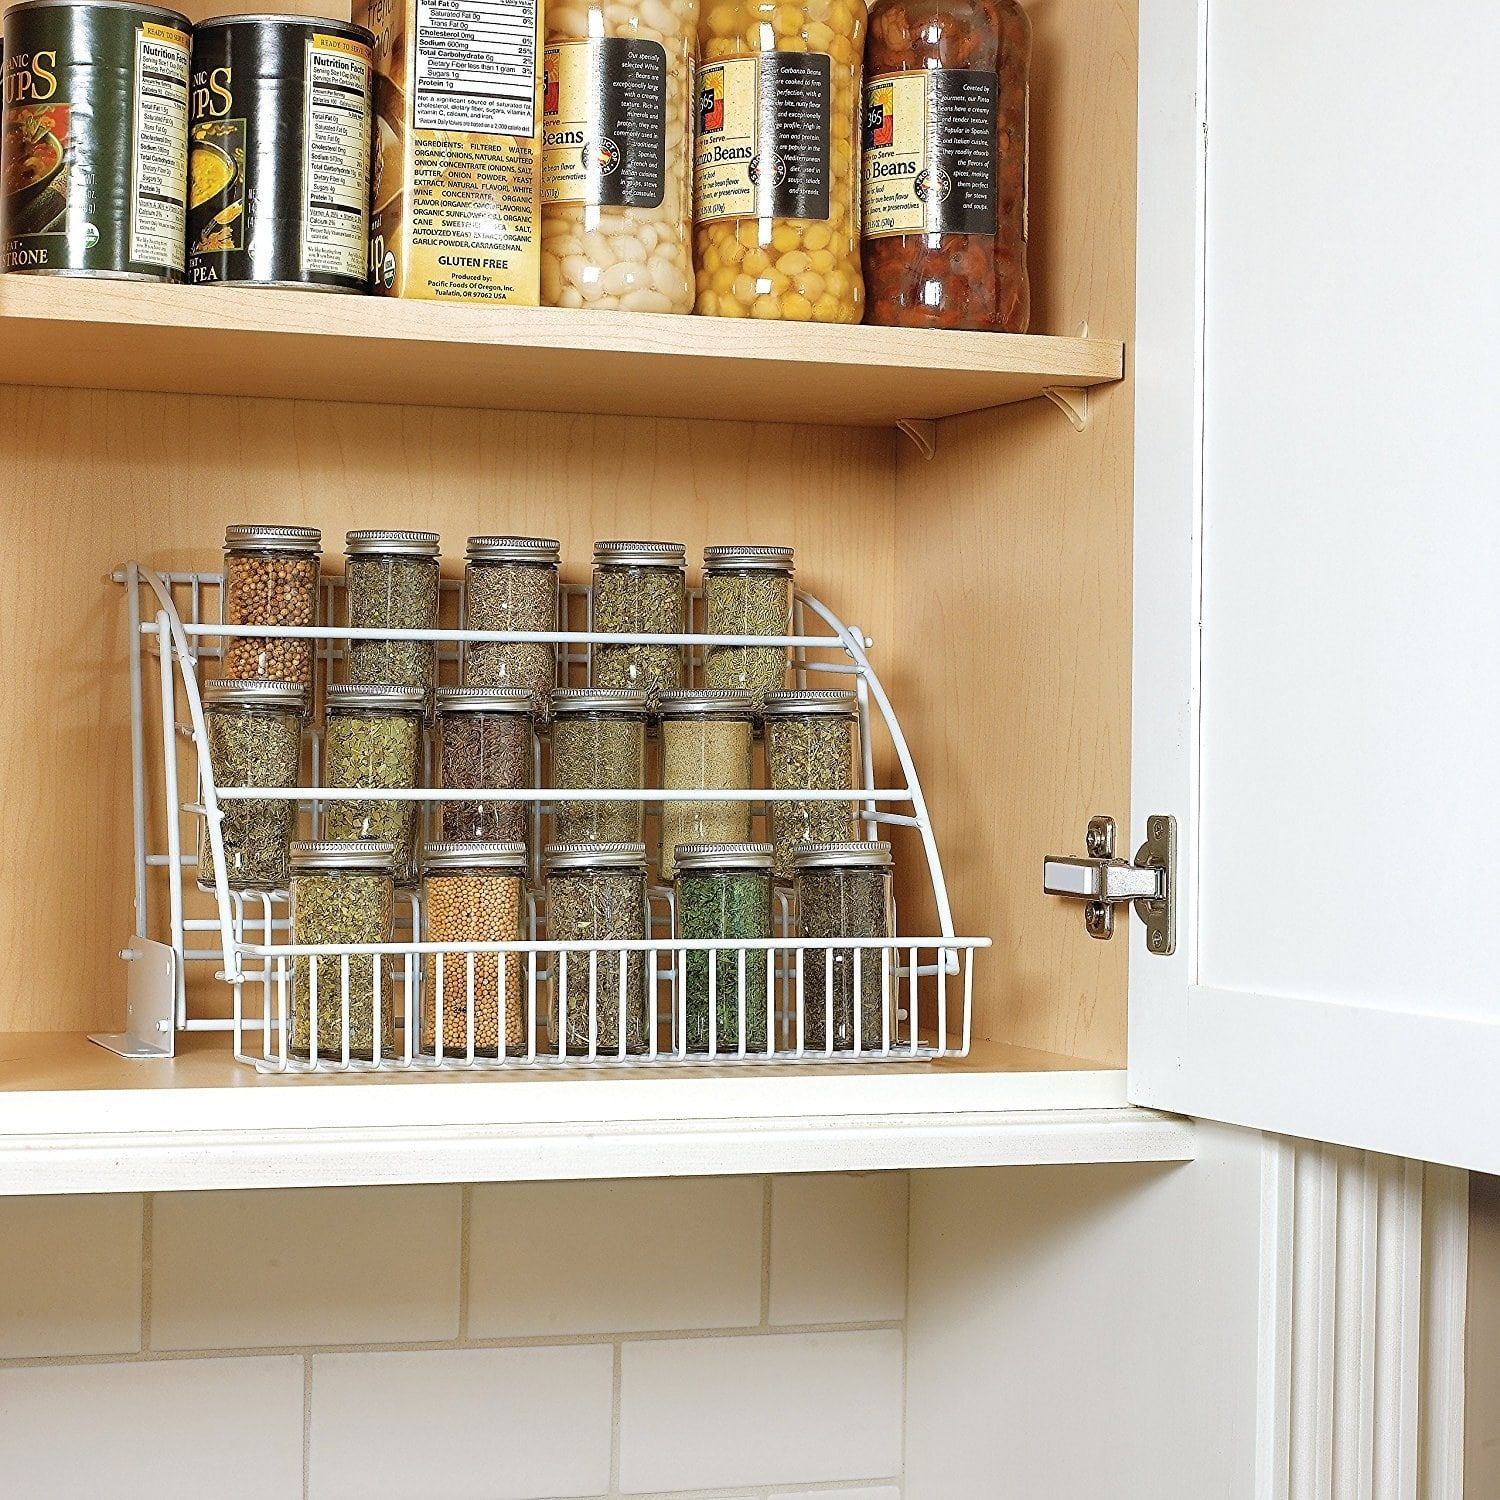 26 Of The Best Kitchen Storage And Organization Products On Amazon Pull Down Spice Rack Small Kitchen Organization Cool Kitchens